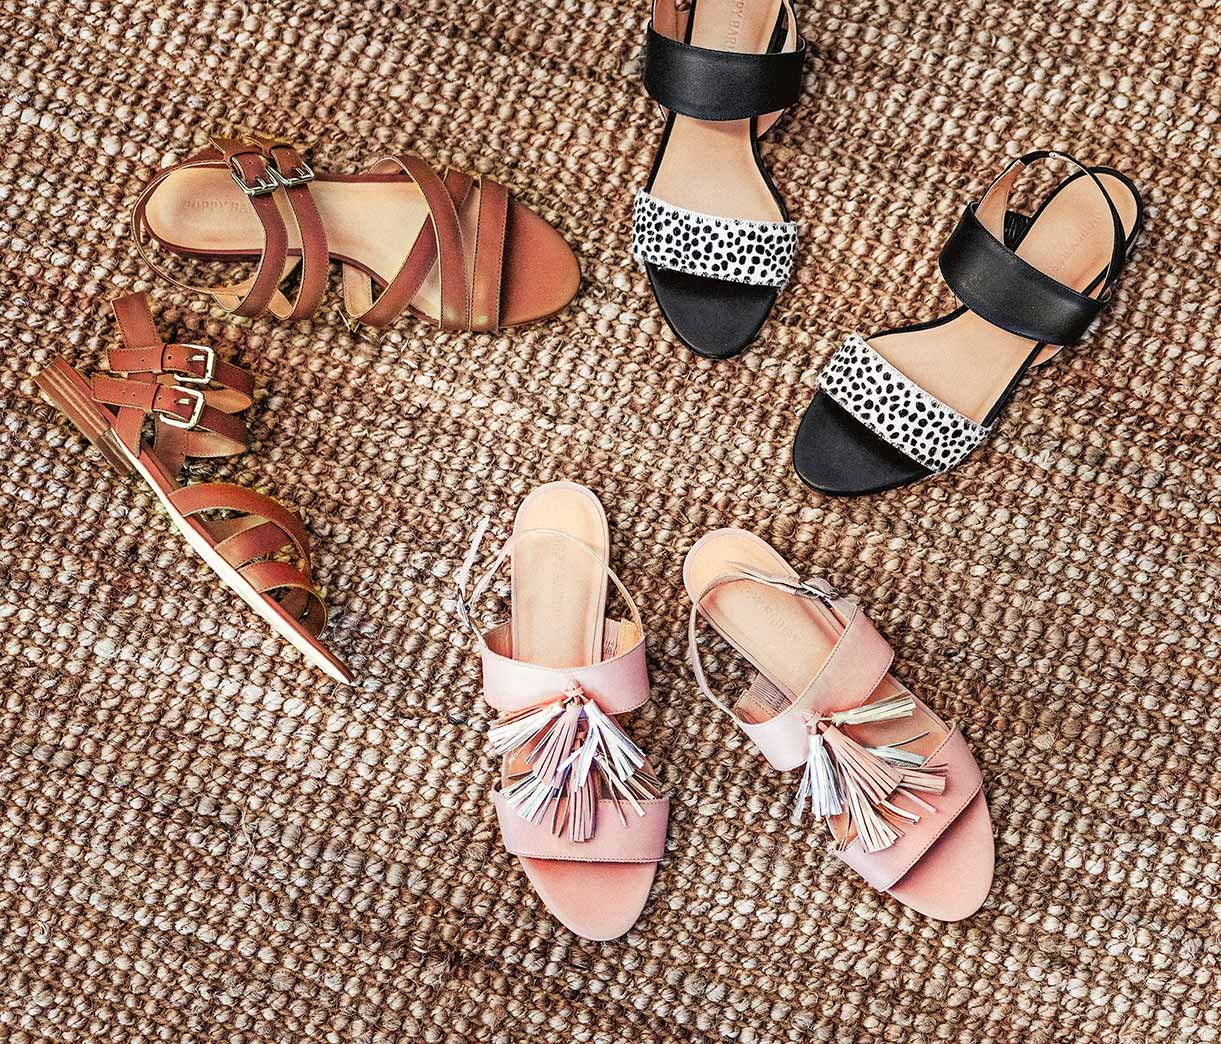 Summer 2019 - Flat Sandals - Poppy Barley